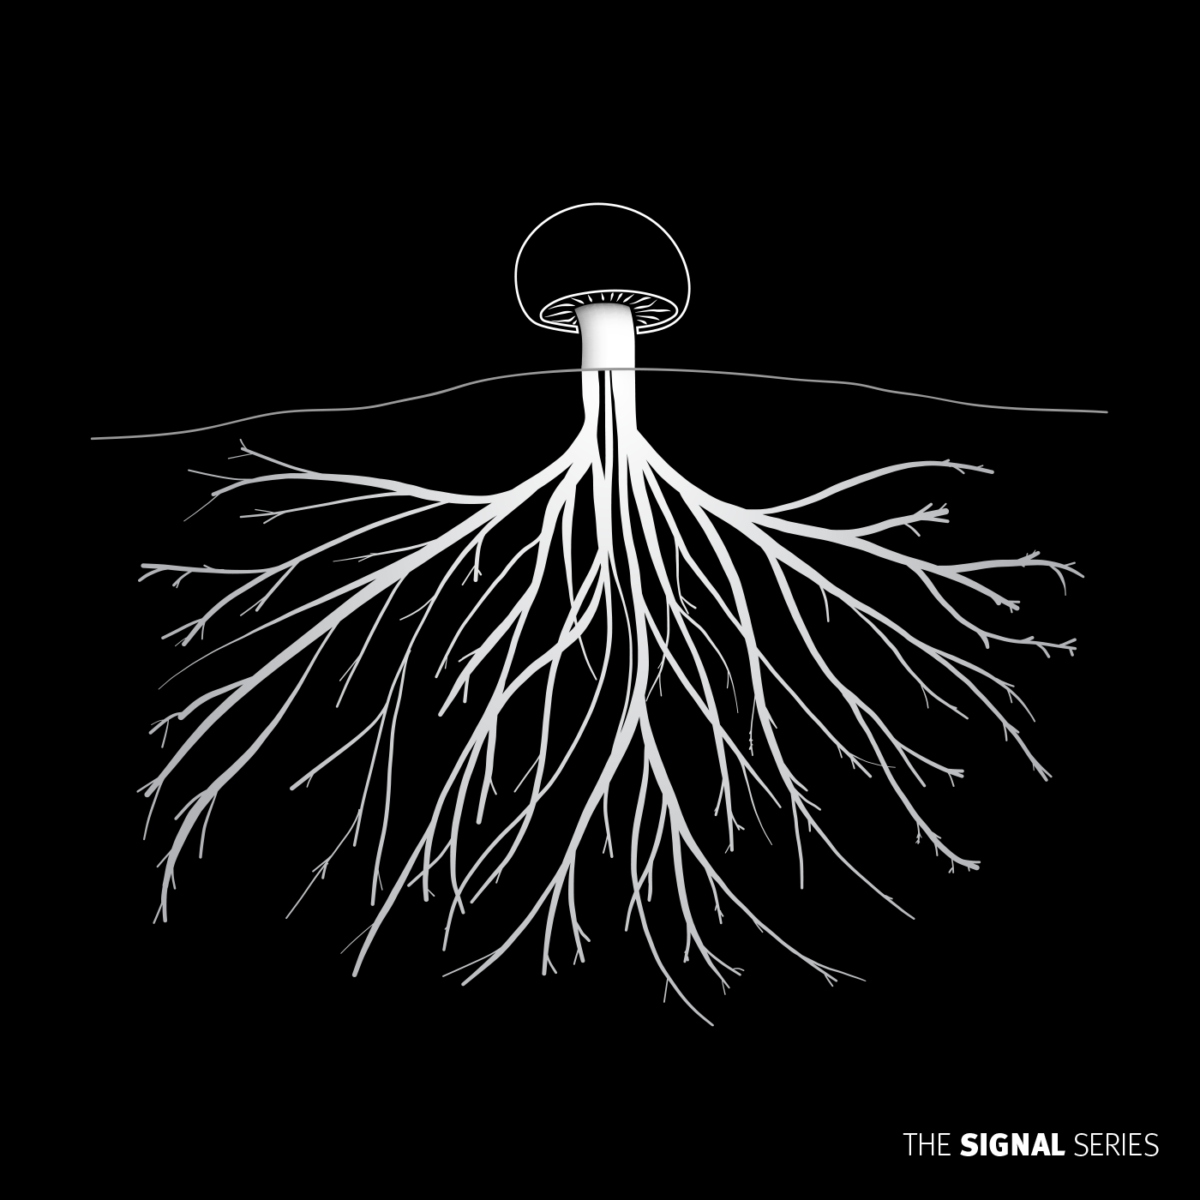 Cover image, an illustration of a mushroom with roots, in a black background